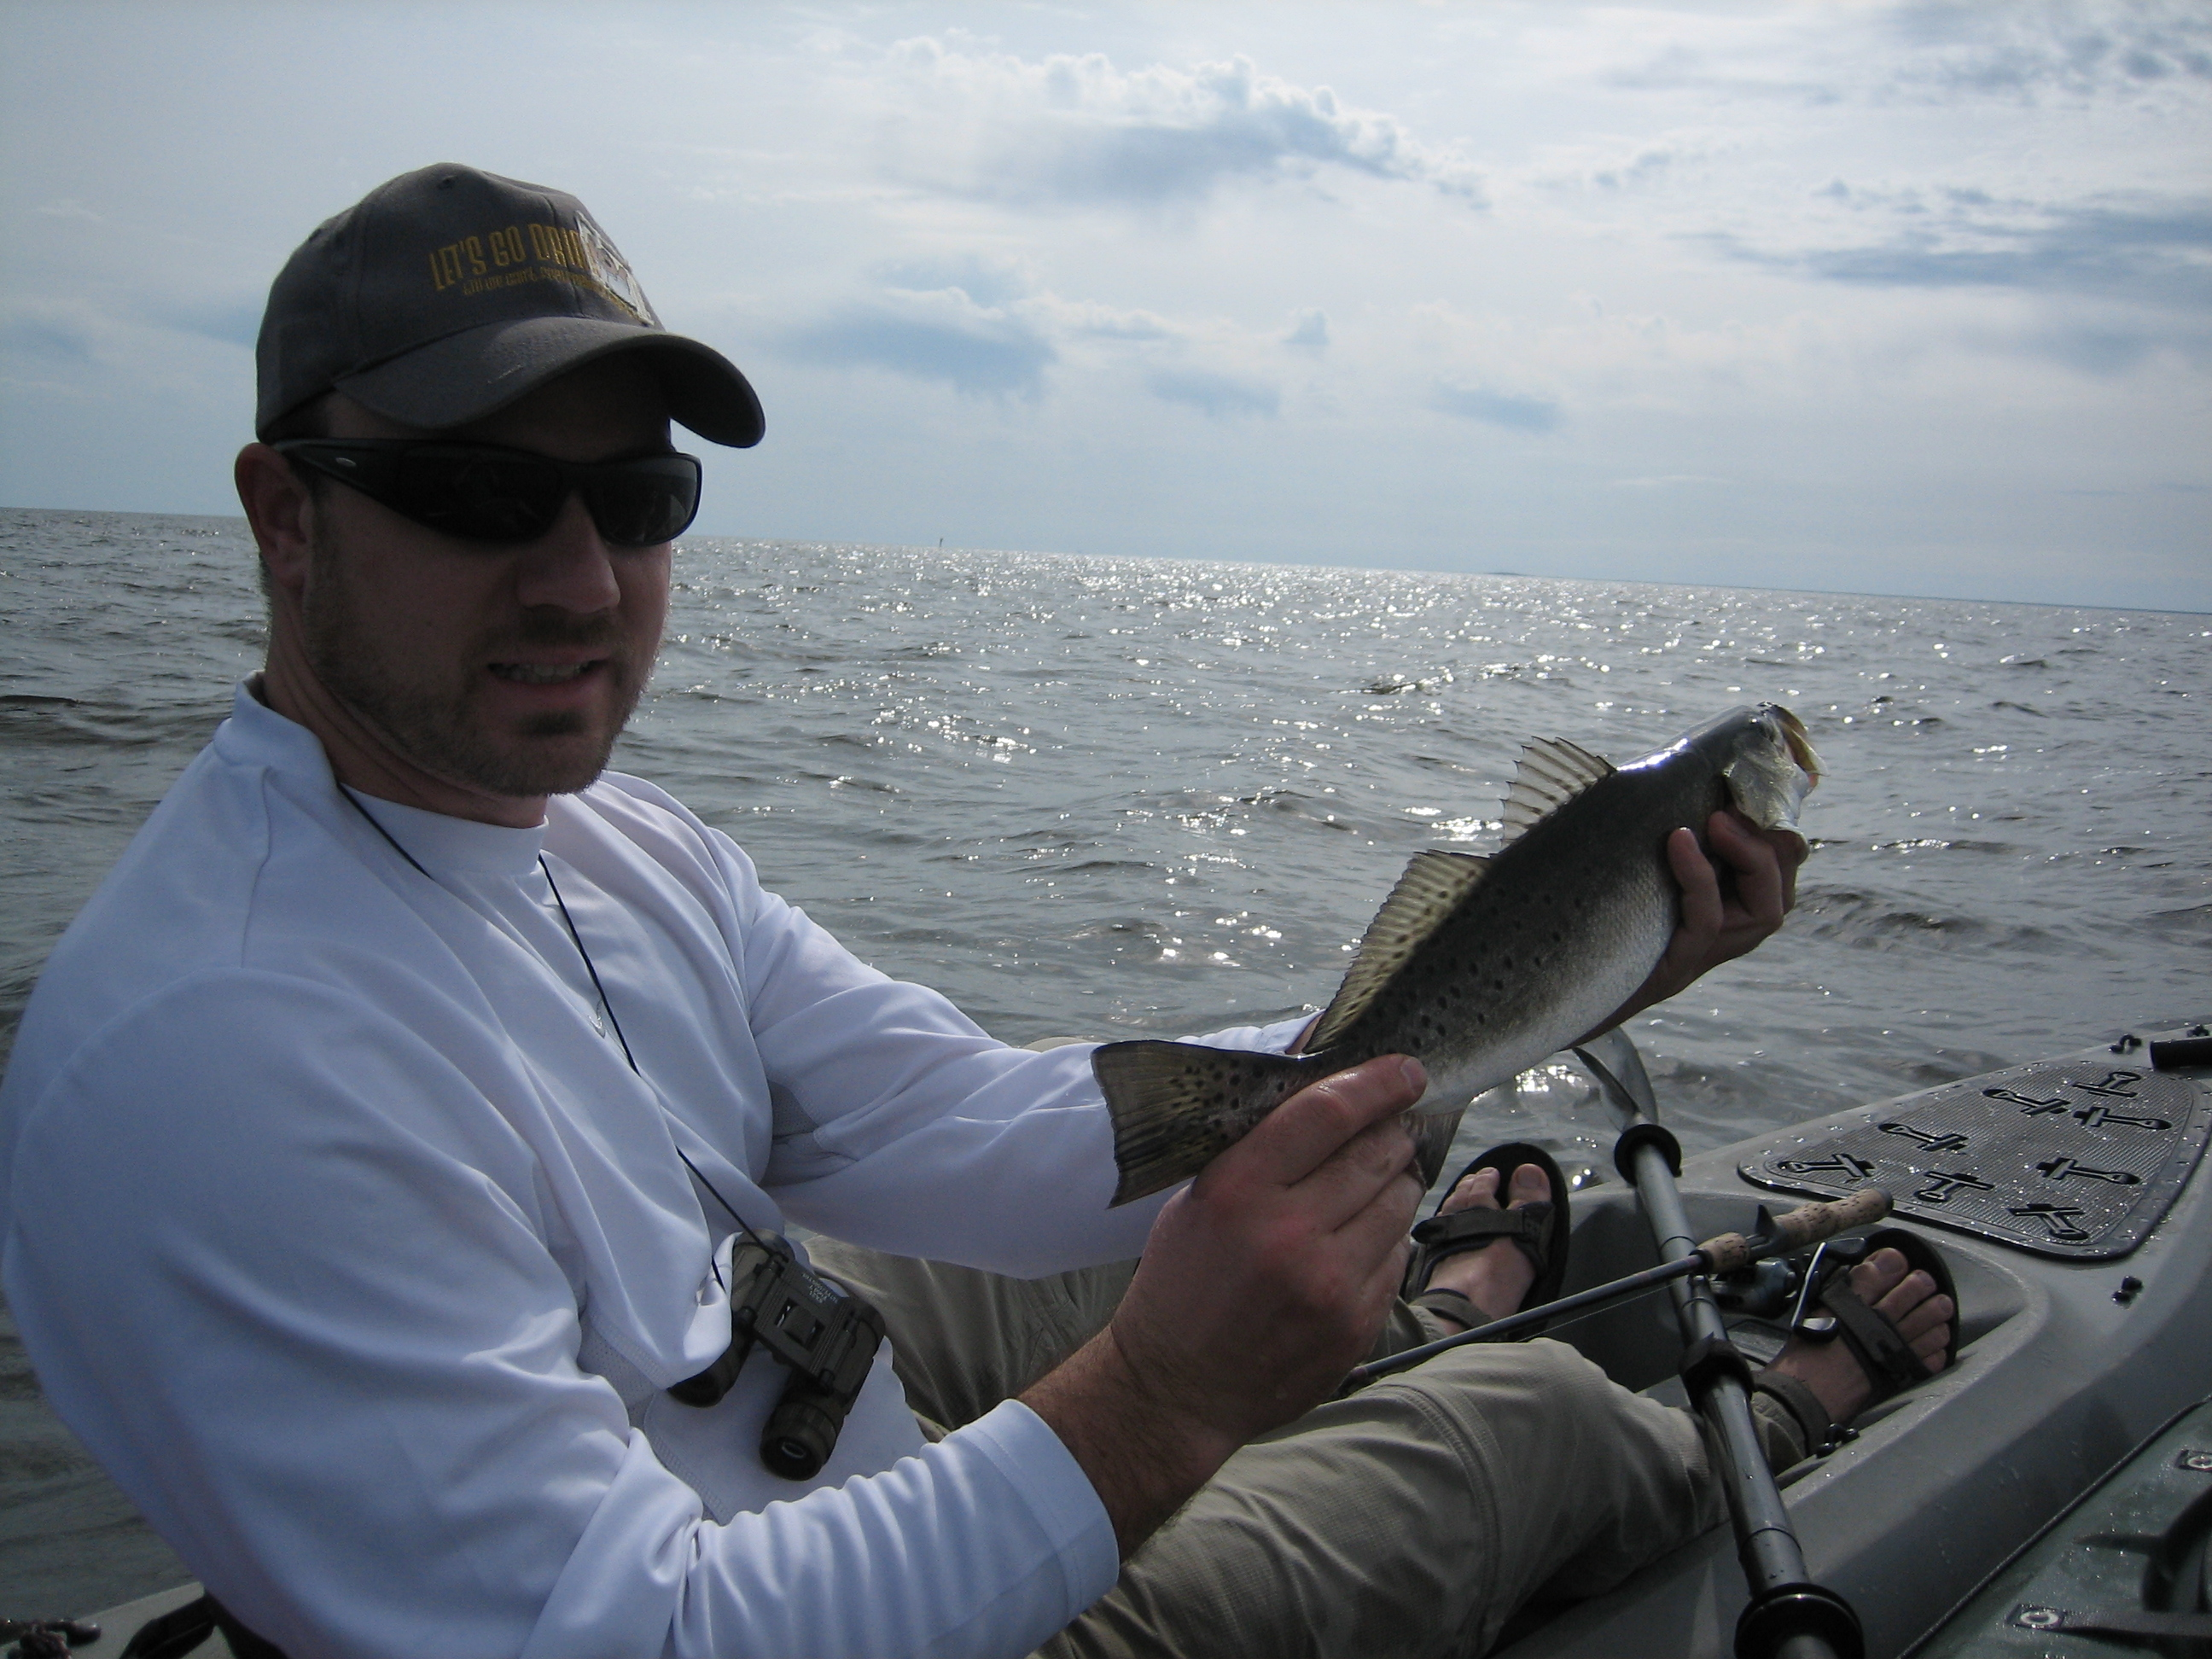 spectrout